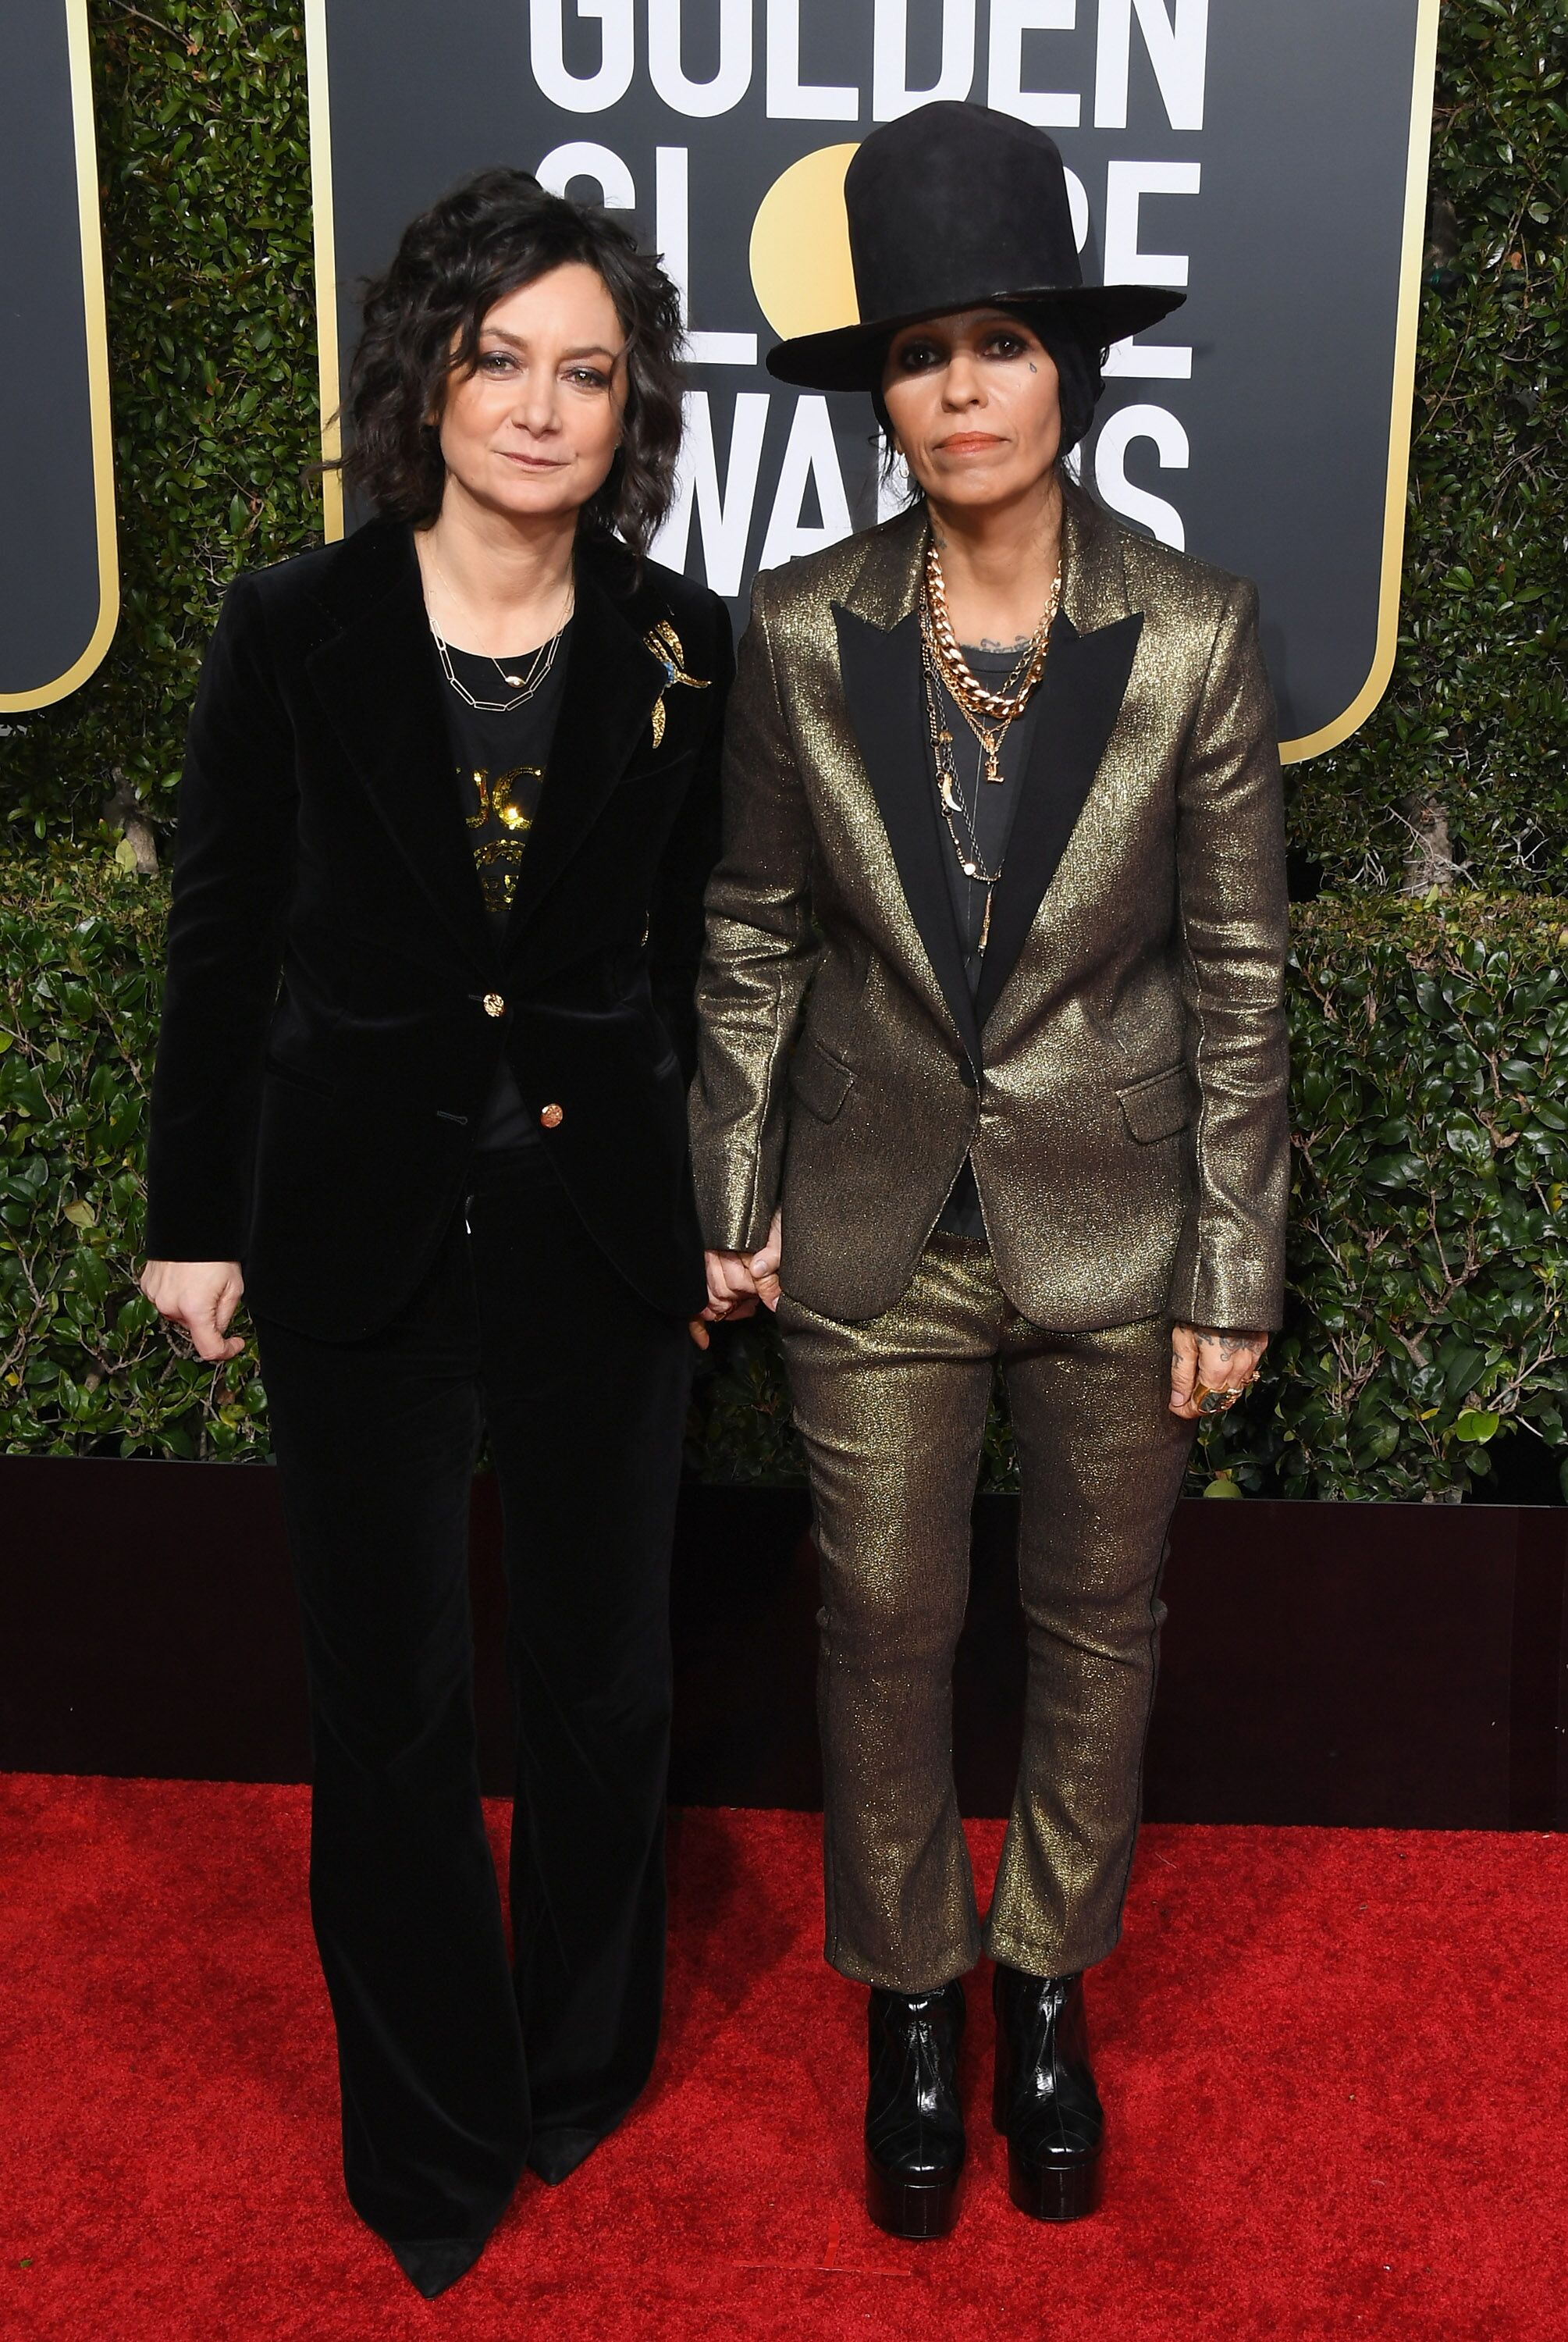 Sara Gilbert and Linda Perry attend the 76th Annual Golden Globe Awards at The Beverly Hilton Hotel | Getty Images